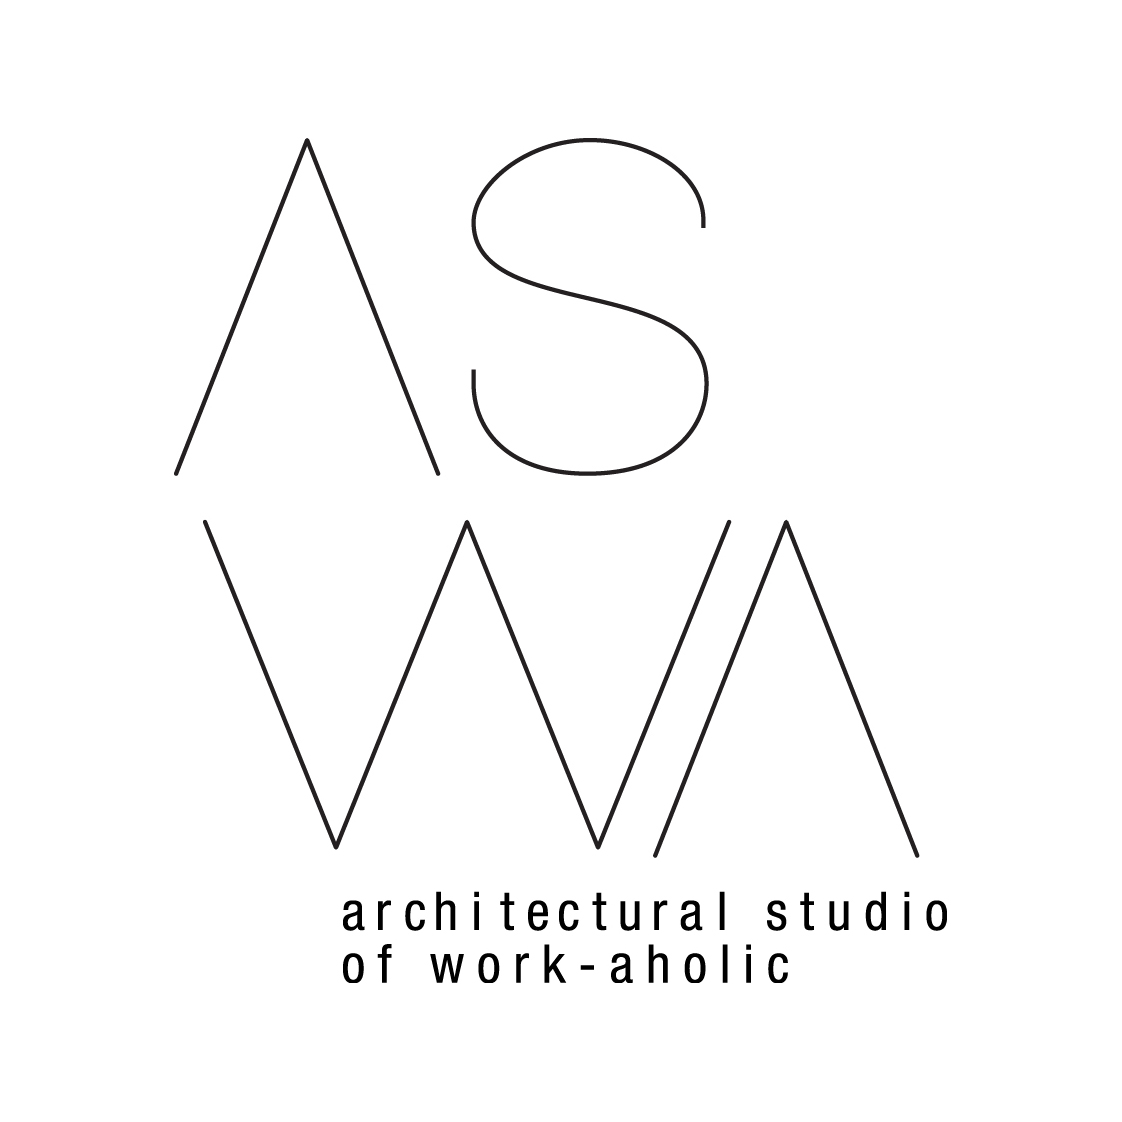 Architecture firms specializing in Hospitality work